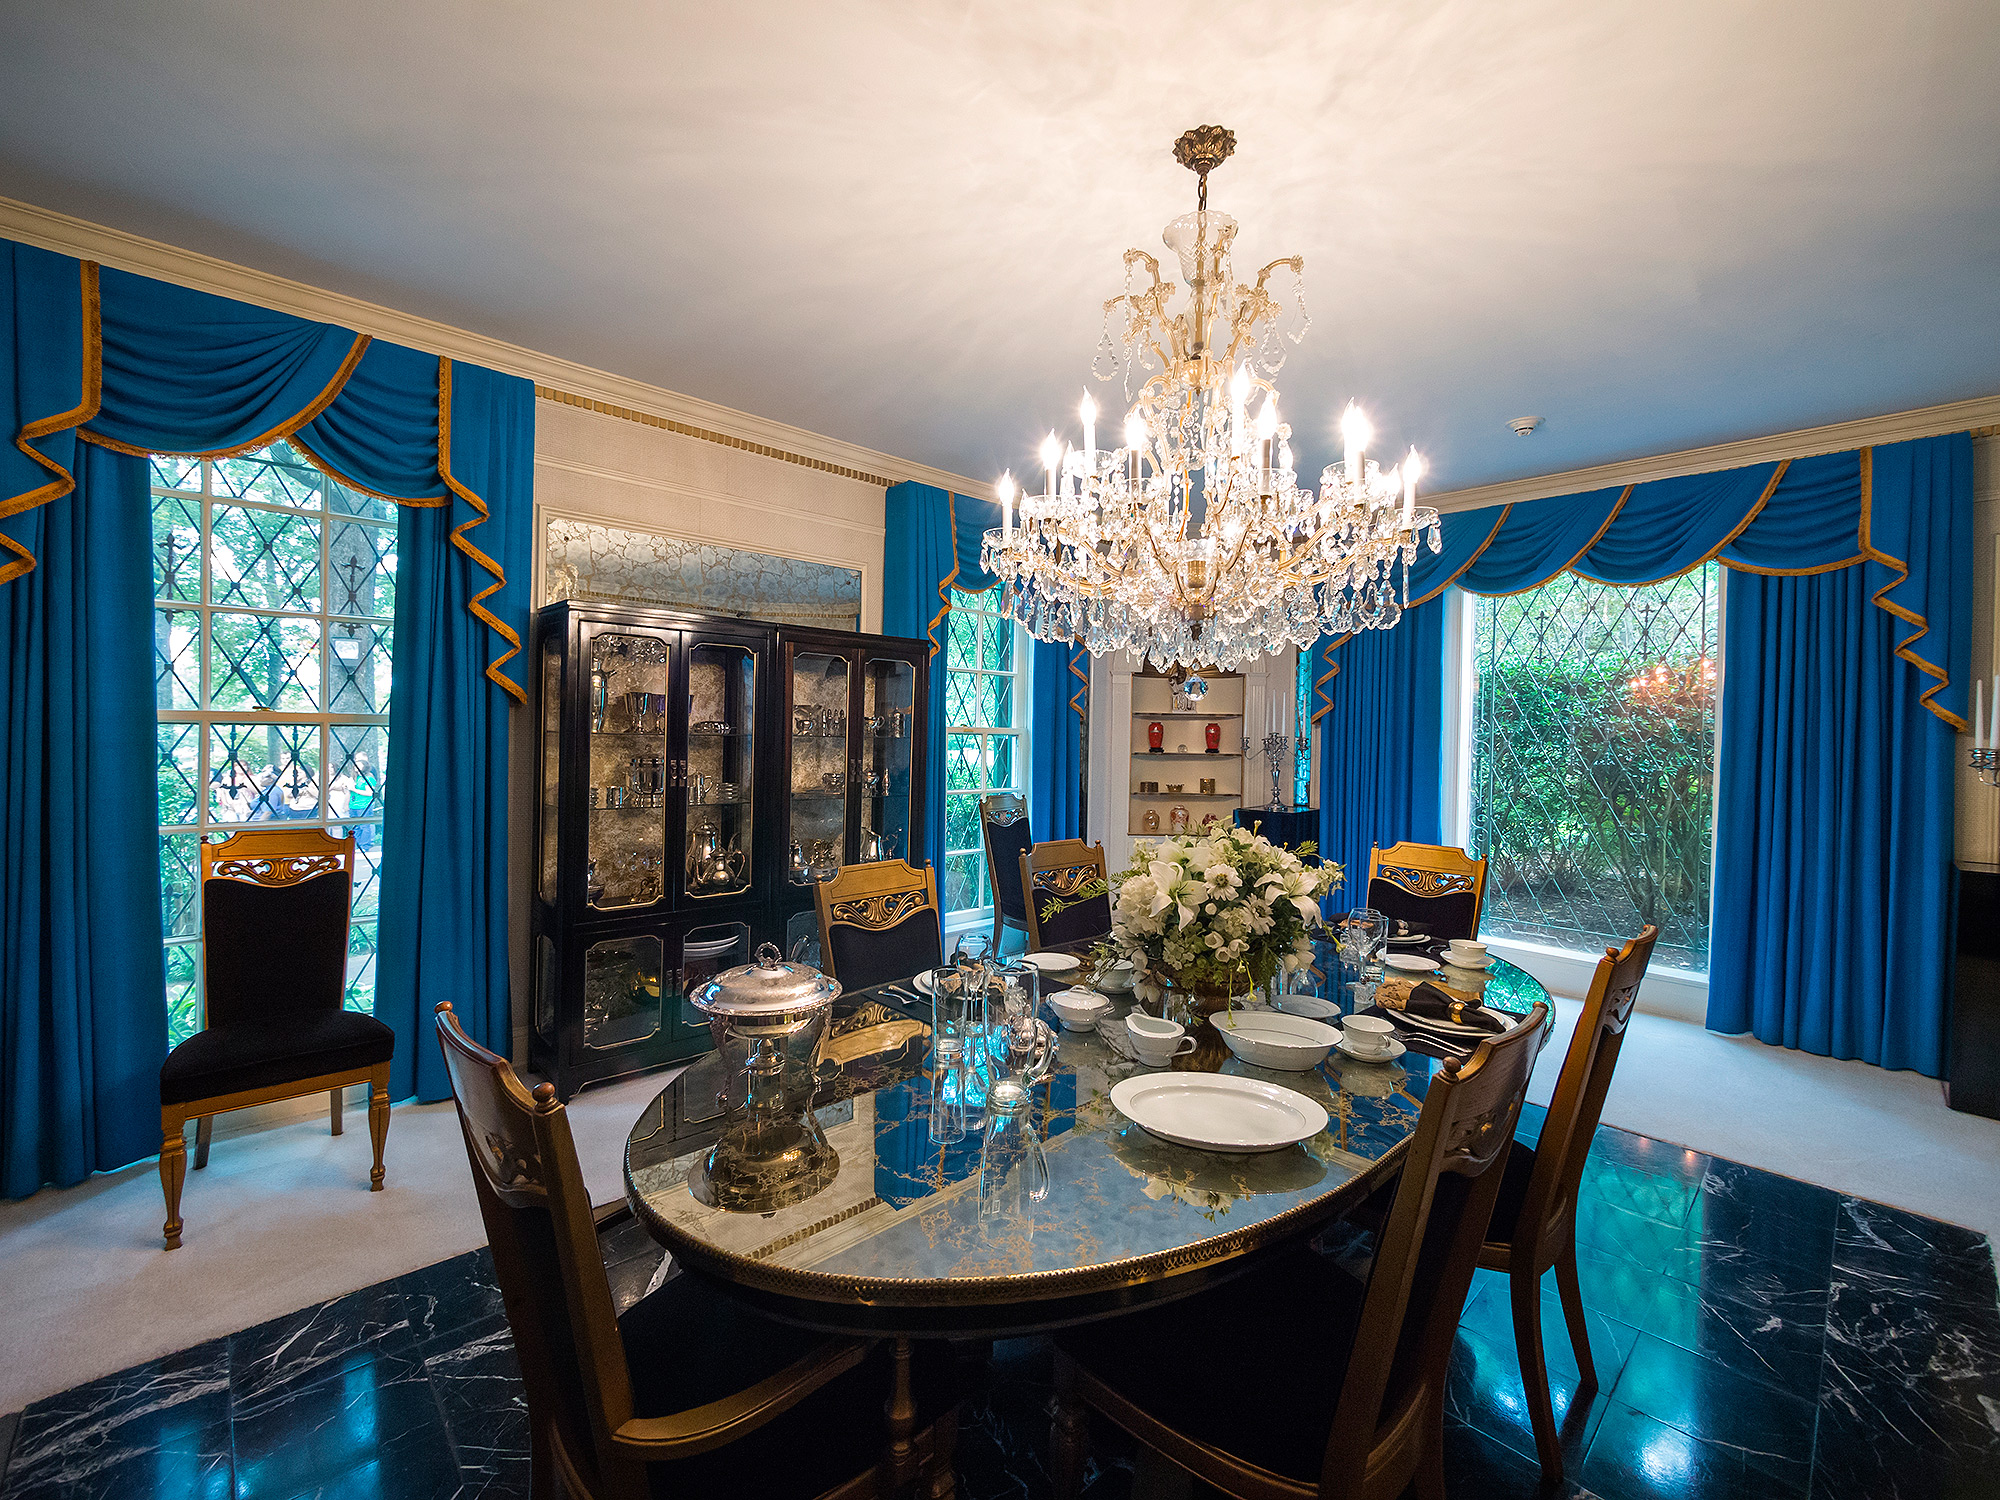 Interior of Graceland Mansion, Memphis, Tennessee.